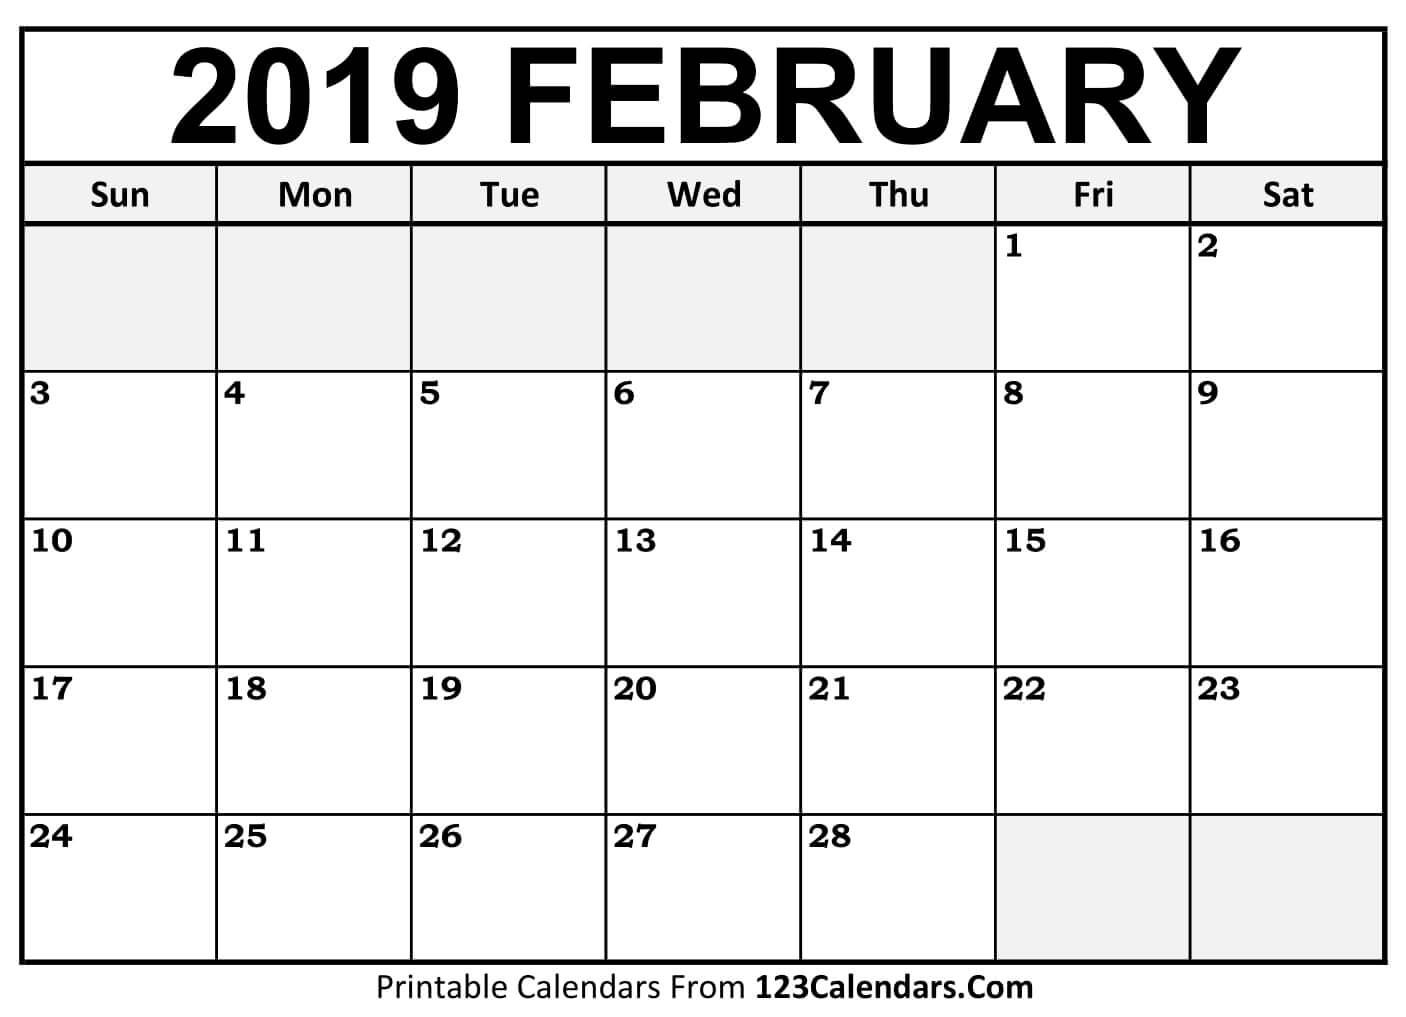 2019 February Calendar Holidays In Word - Printable Calendar 2019 Calendar 2019 February Printable